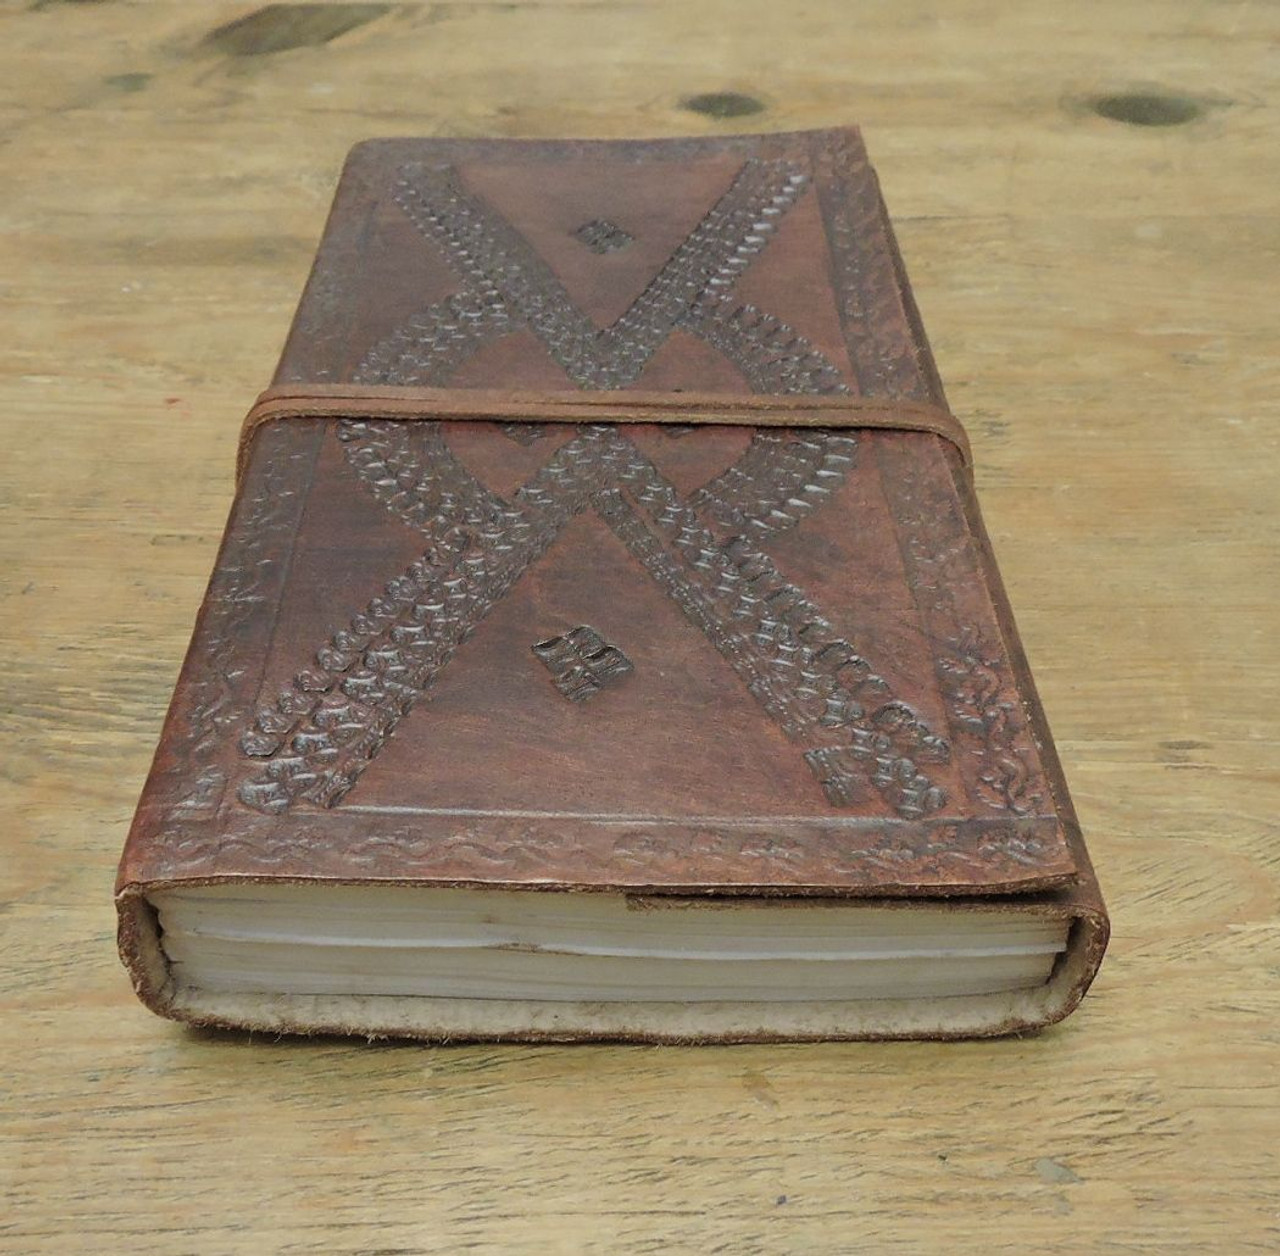 bottom view of leather journal - lined paper with embossing